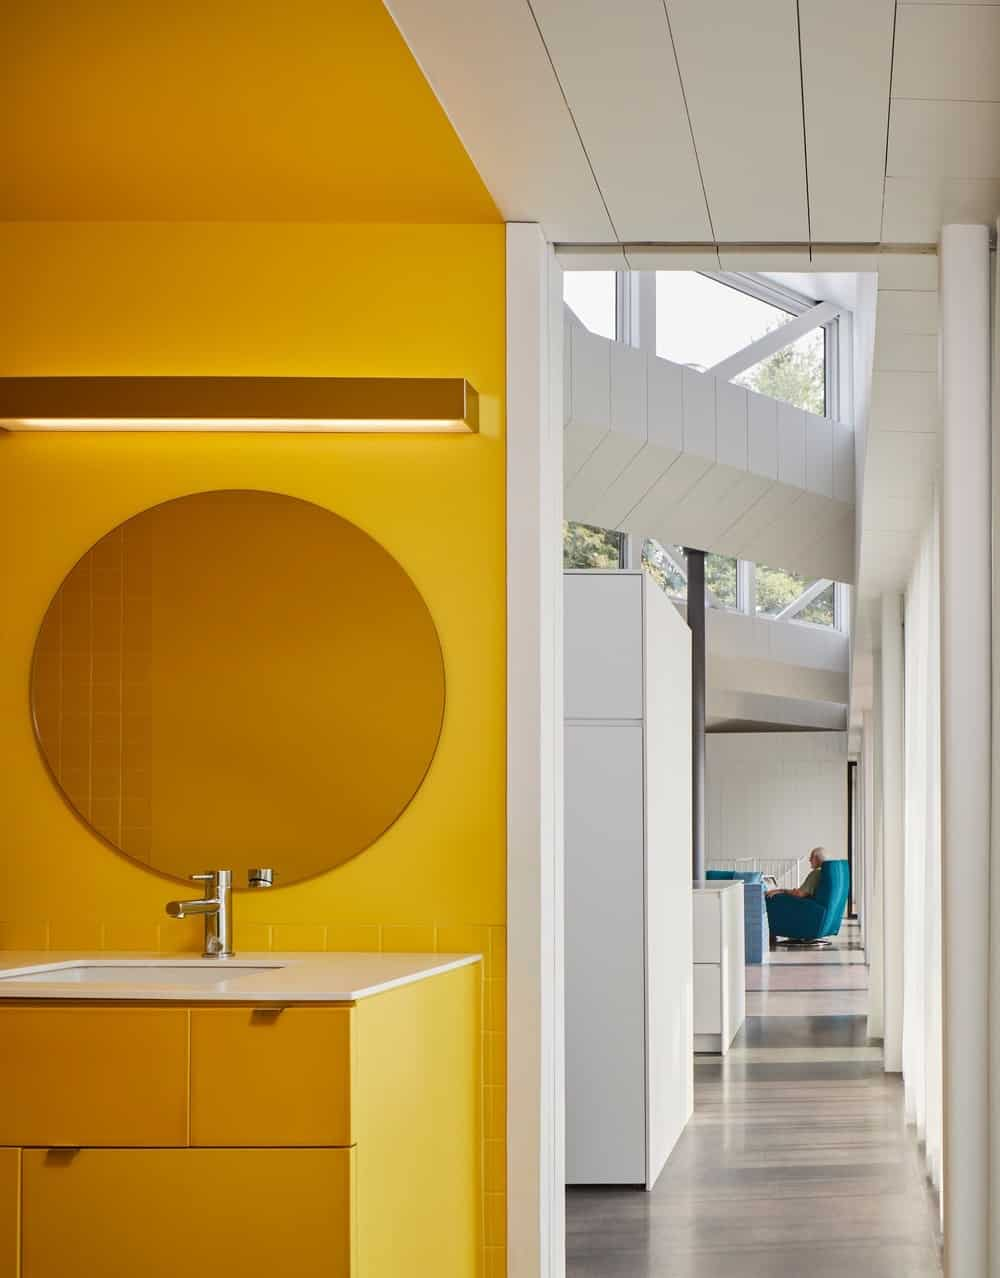 Hallway with white walls together with yellow walled single sink. Photographer: Doublespace Photography / Designers: Julia Jamrozik and Coryn Kempster / Structural Engineer: Jim Thomson / General Contractor: Timberline Custom Homes / Landscape Design: Gray Landscape Construction